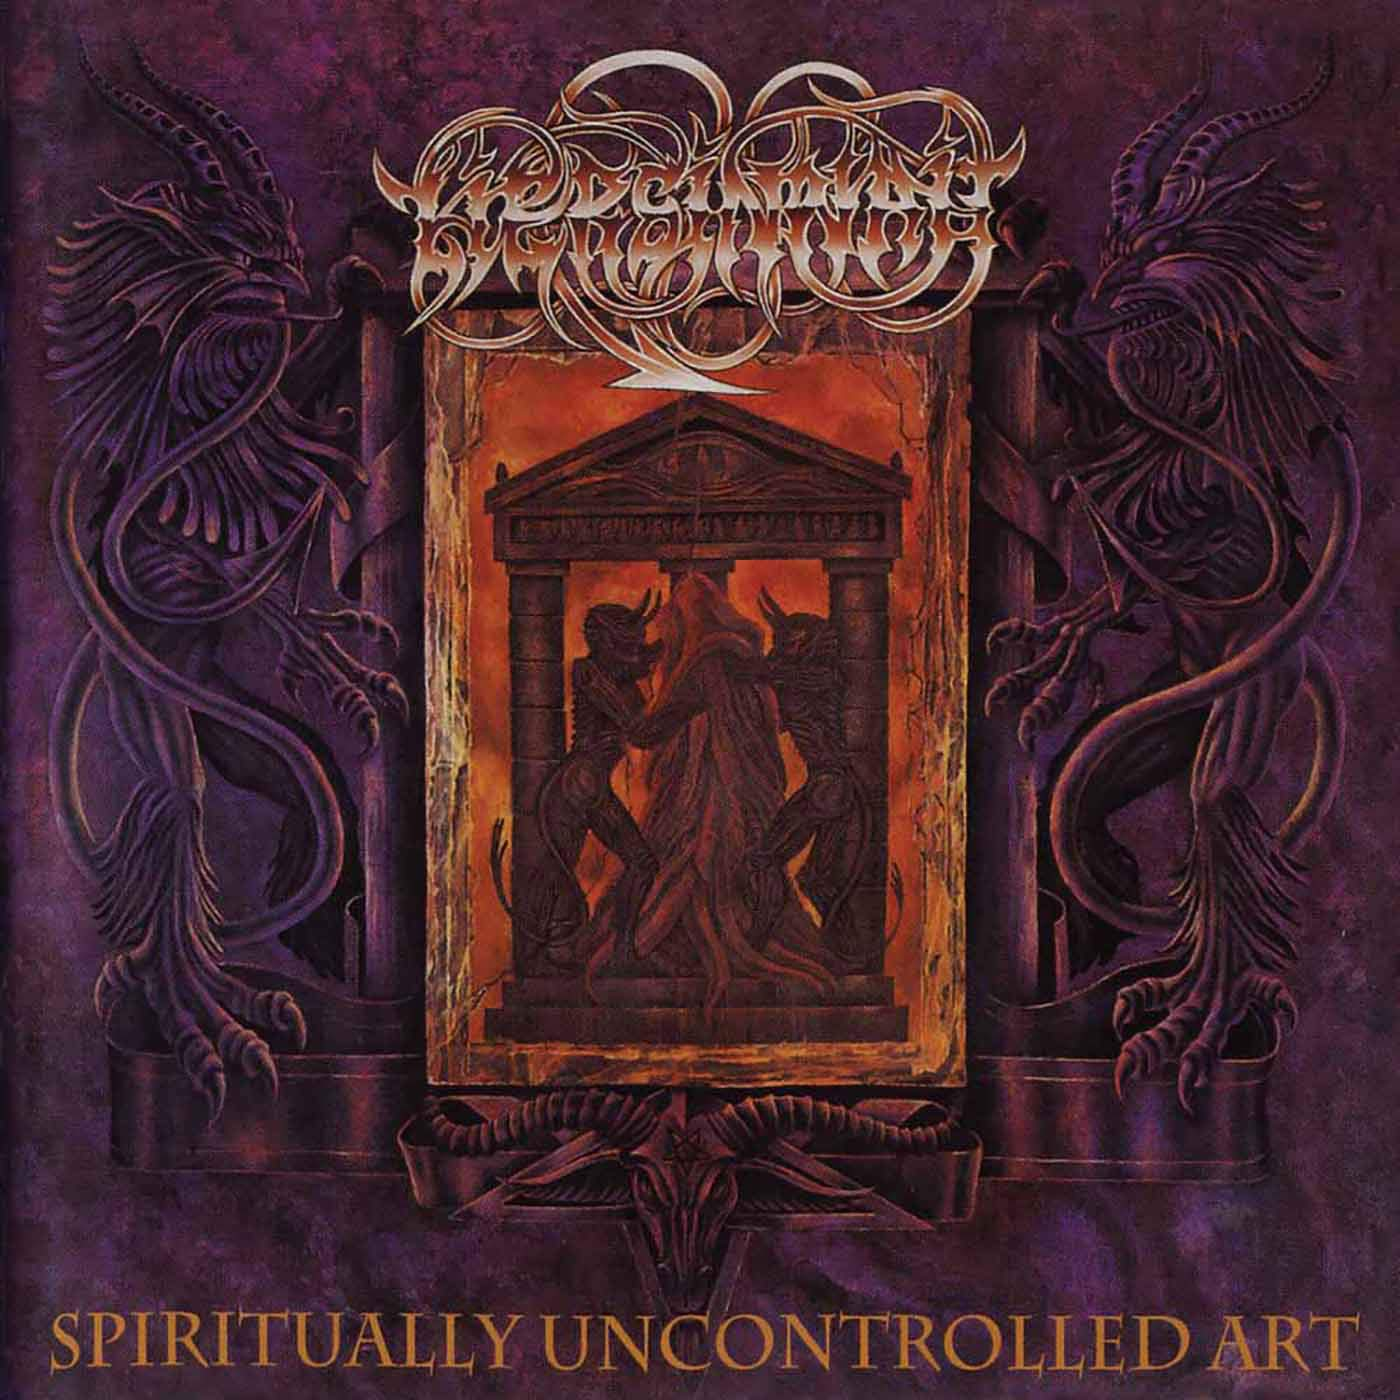 Vinilo : Liers in Wait - Spiritually Uncontrolled Art (10-Inch Vinyl, Canada - Import)